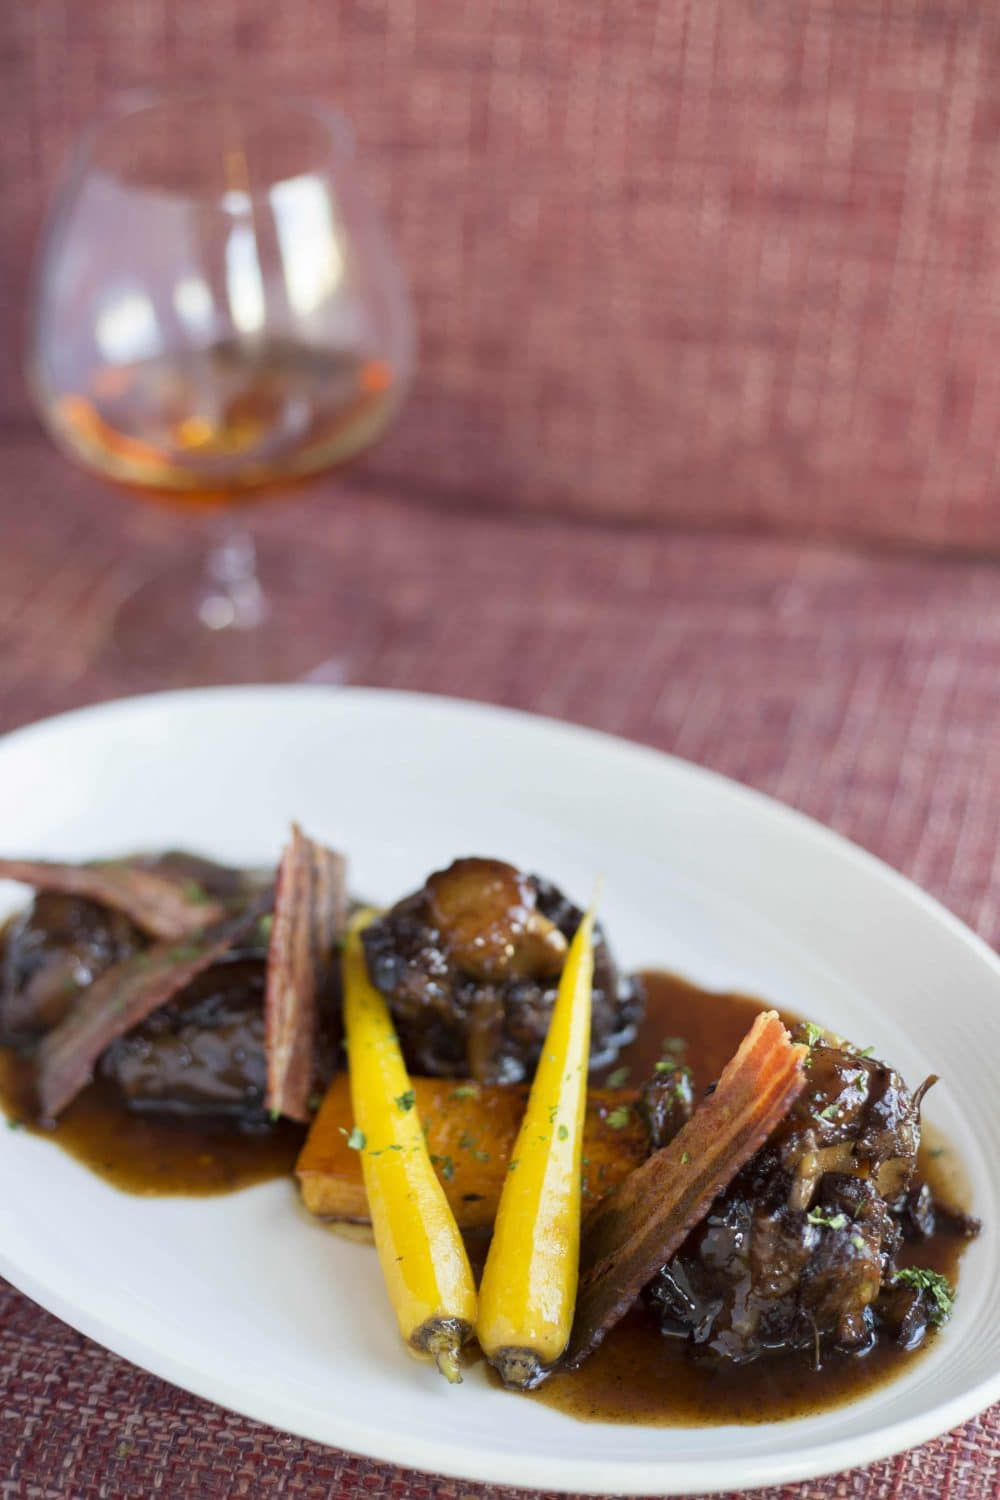 Slow braised beef oxtail, smoked bacon, black mushroom purée, butternut, and parsnips (Credit: Jason van der Merwe)